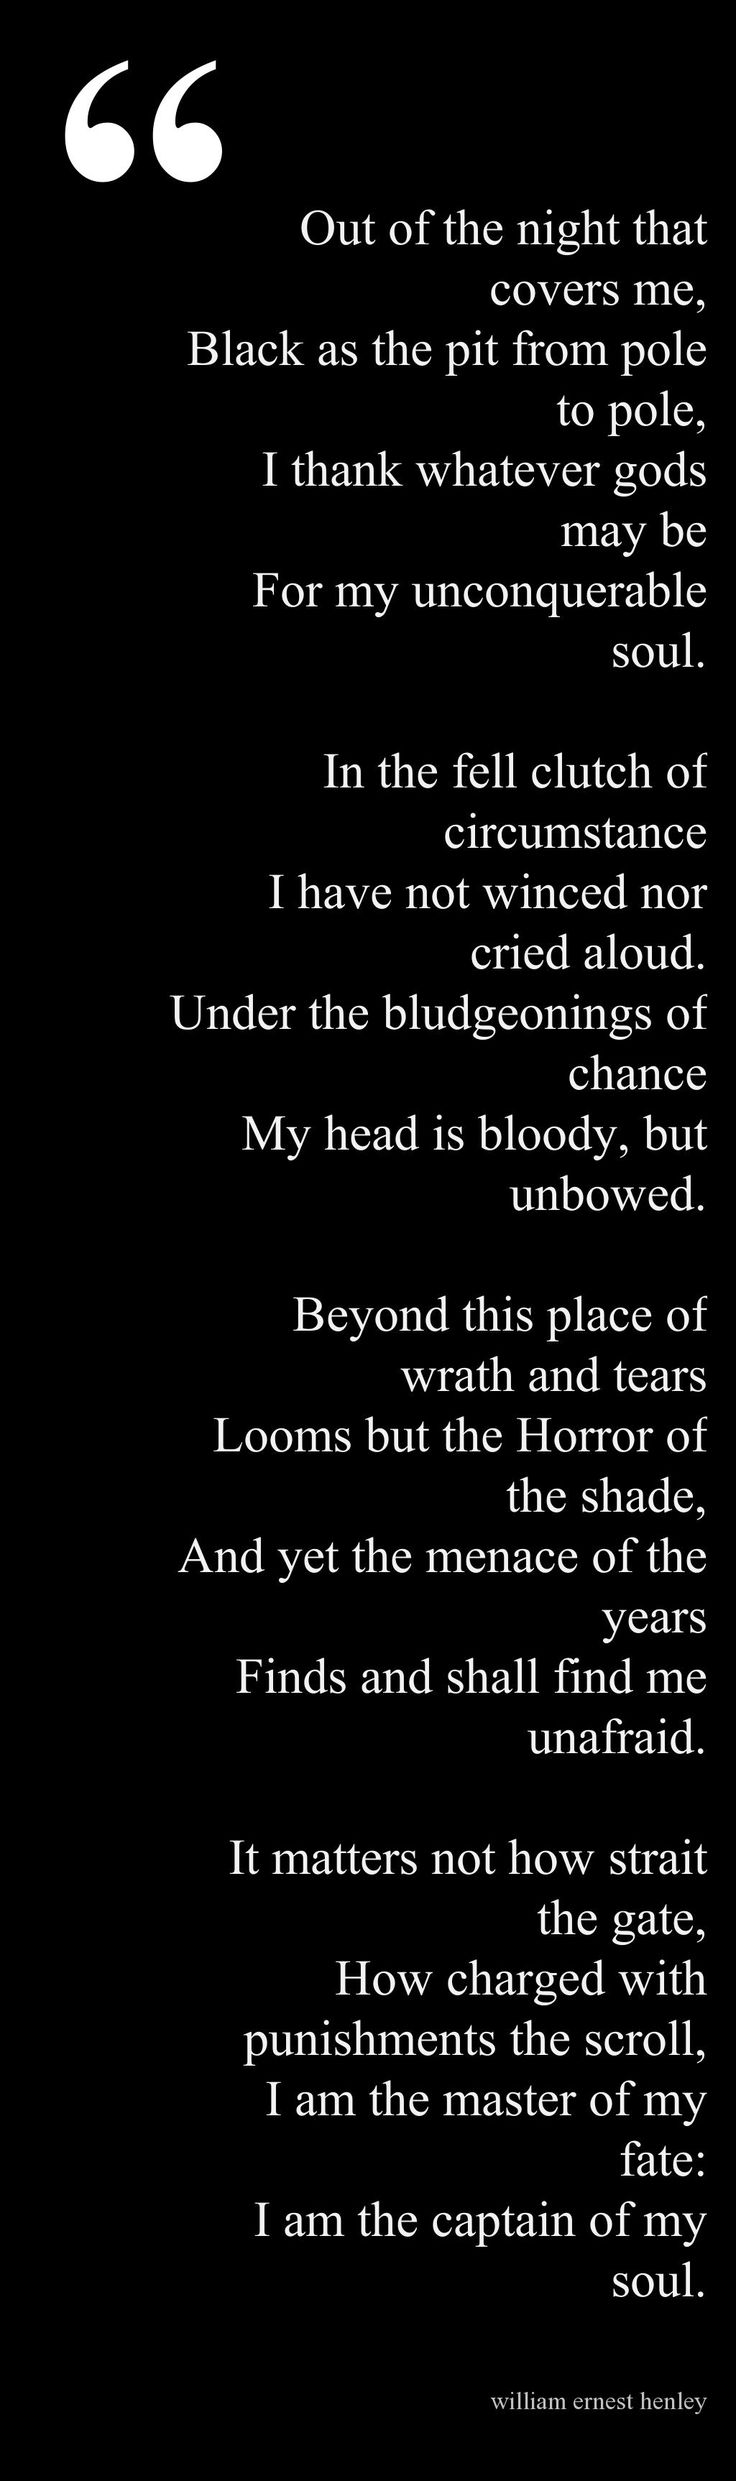 Invictus- This is the poem which sustained Nelson Mandela in his prison days, and later  a movie by the name of Invictus was made based on Mandela's life.